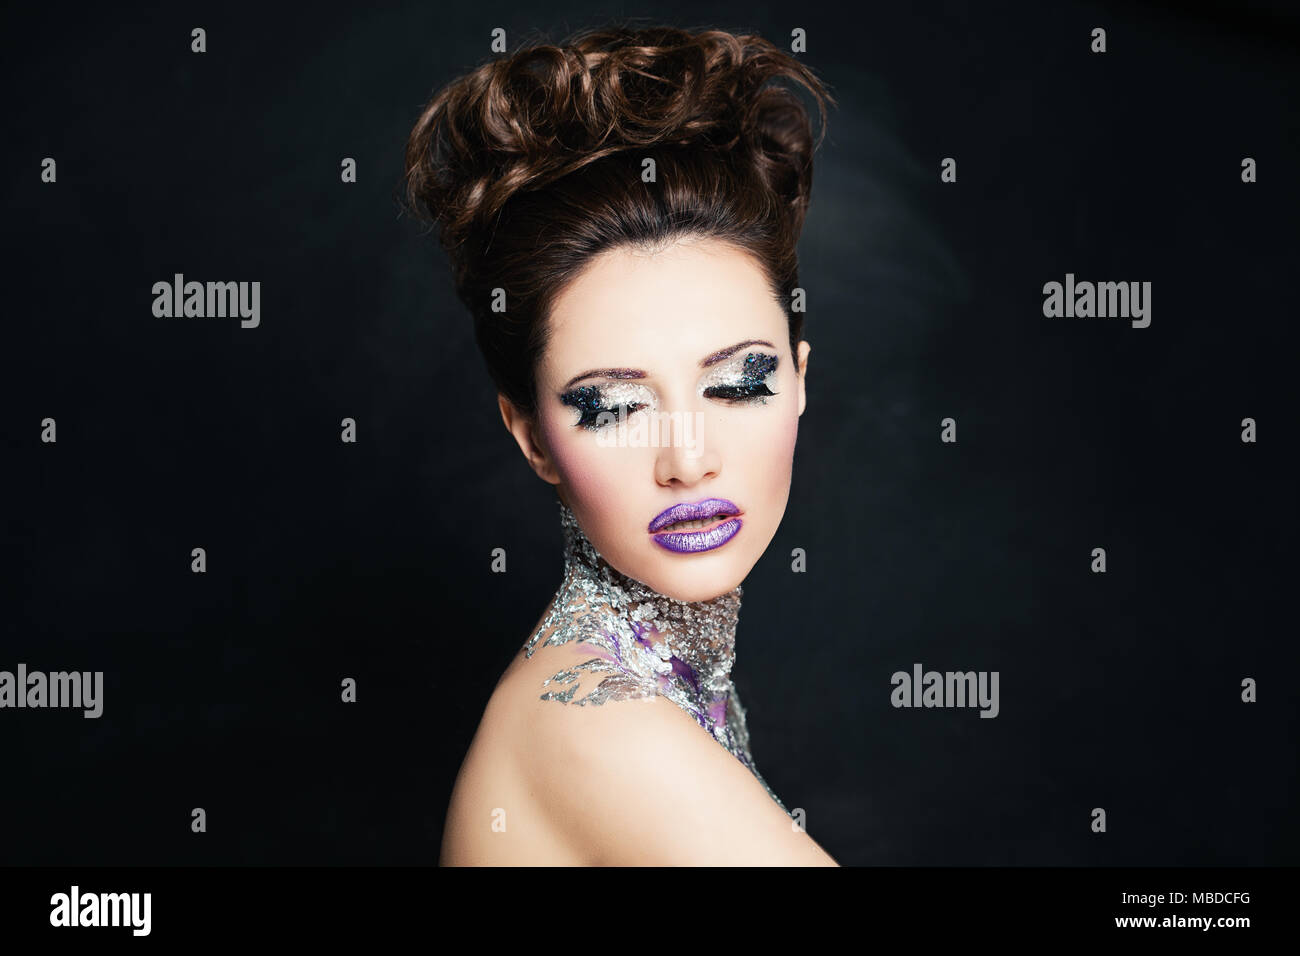 9a7a6caf34a Pretty Woman Fashion Model with False Eyelashes and Glitter Eyeshadow.  Creative Makeup - Stock Image